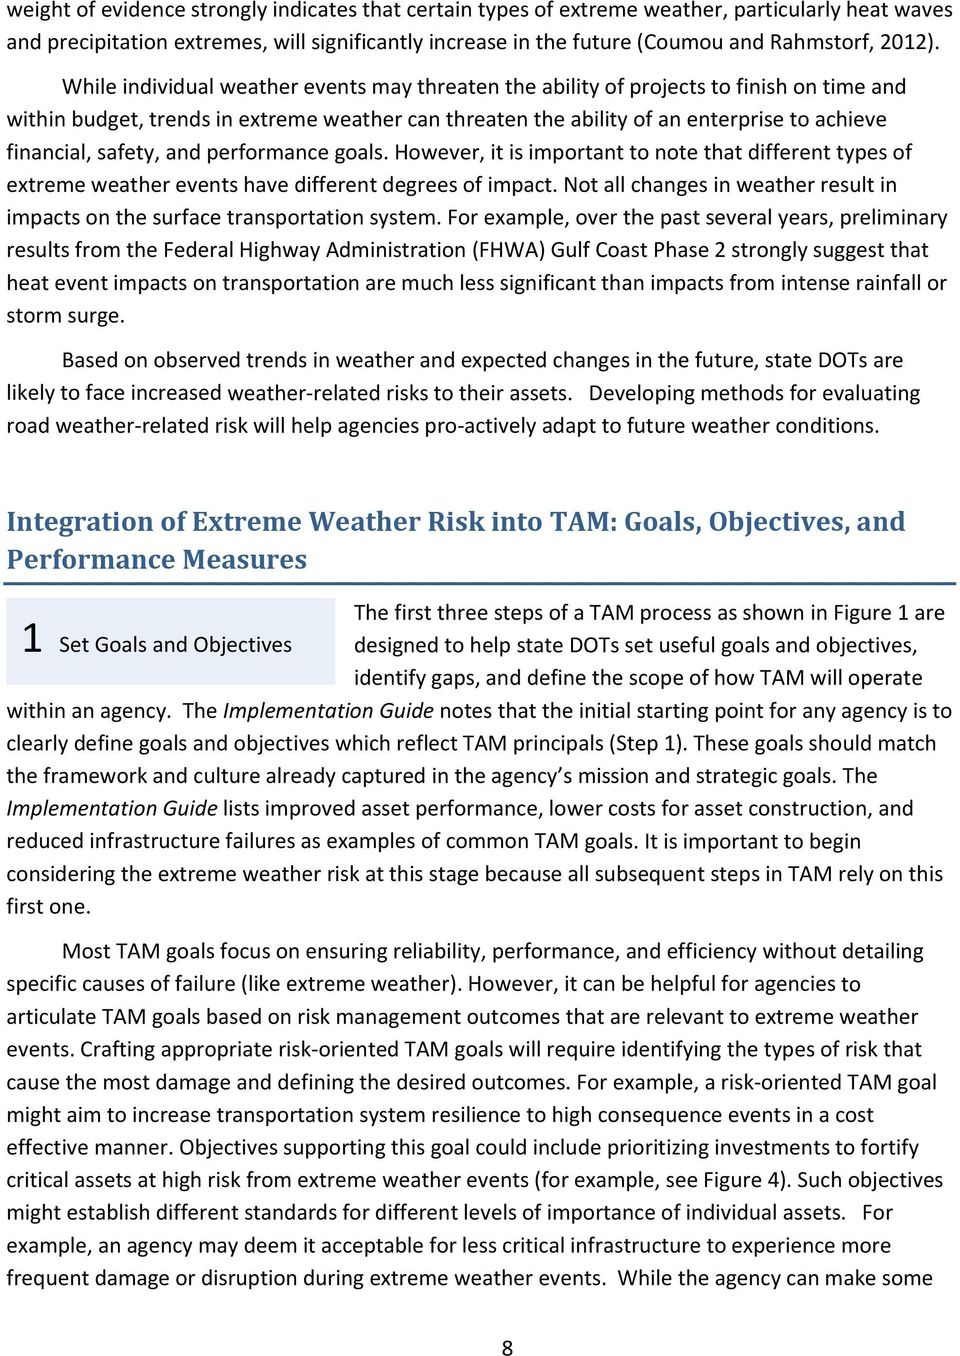 safety, and performance goals. However, it is important to note that different types of extreme weather events have different degrees of impact.